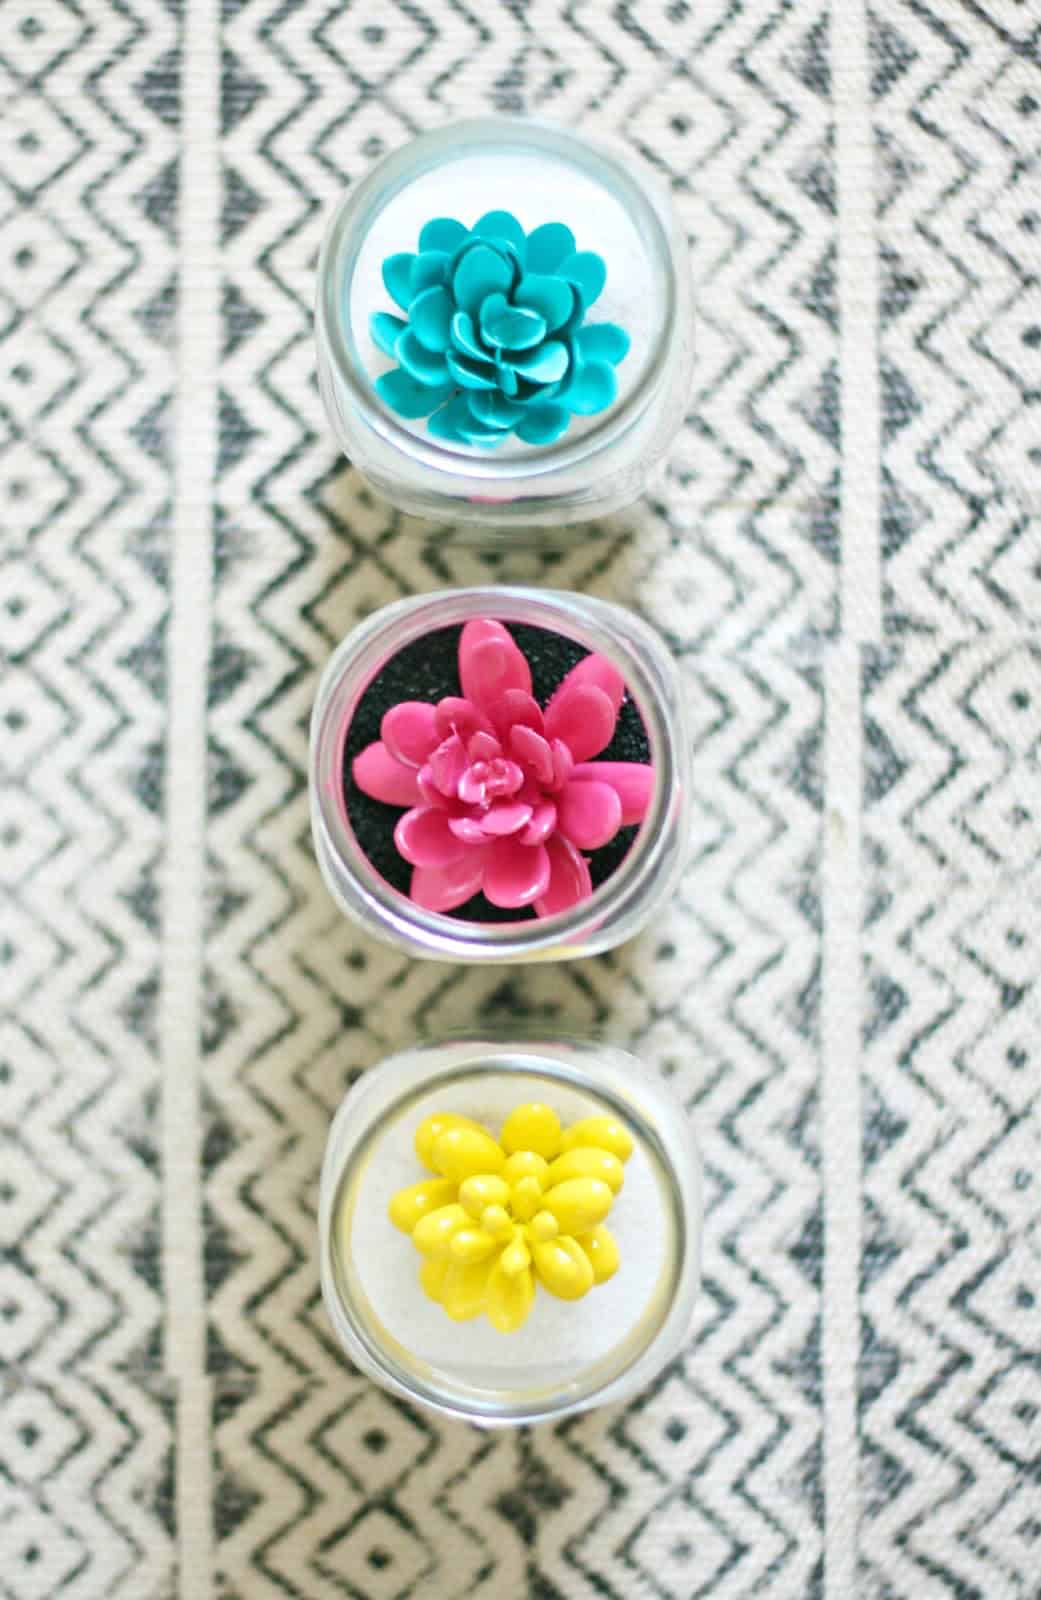 These sand art terrariums are a perfect pairing of a craft you loved as a kid combined with trendy succulents! It's really easy to do with any colors.